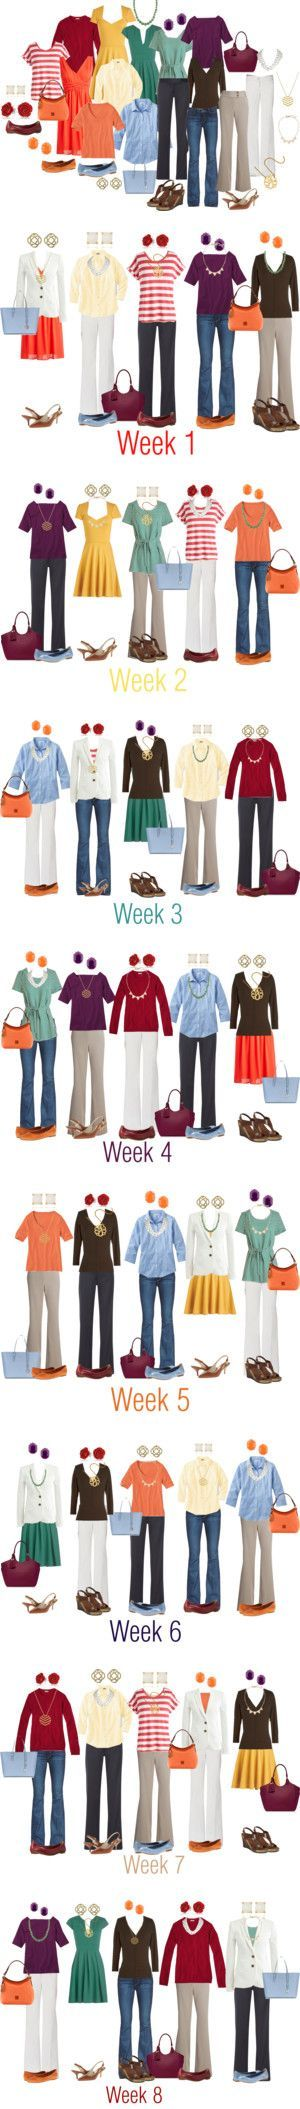 Primary Colors Capsule by kristin727 on Polyvore featuring Dooney & Bourke, Tory Burch, Michael Kors, Bea & Dot, STELLA McCARTNEY, Paige Denim, Rafaella, MICHAEL Michael Kors, Miz Mooz and Børn. Here's my travel wardrobe for 10 days in Japan: http://www.sewinlove.com.au/2013/03/28/10-days-japan-travel-capsule-wardrobe-%E6%97%A5%E6%9C%AC%E6%97%85%E8%A1%8C%E3%81%AE%E7%9D%80%E3%81%BE%E3%82%8F%E3%81%97%E3%82%B3%E3%83%BC%E3%83%87/